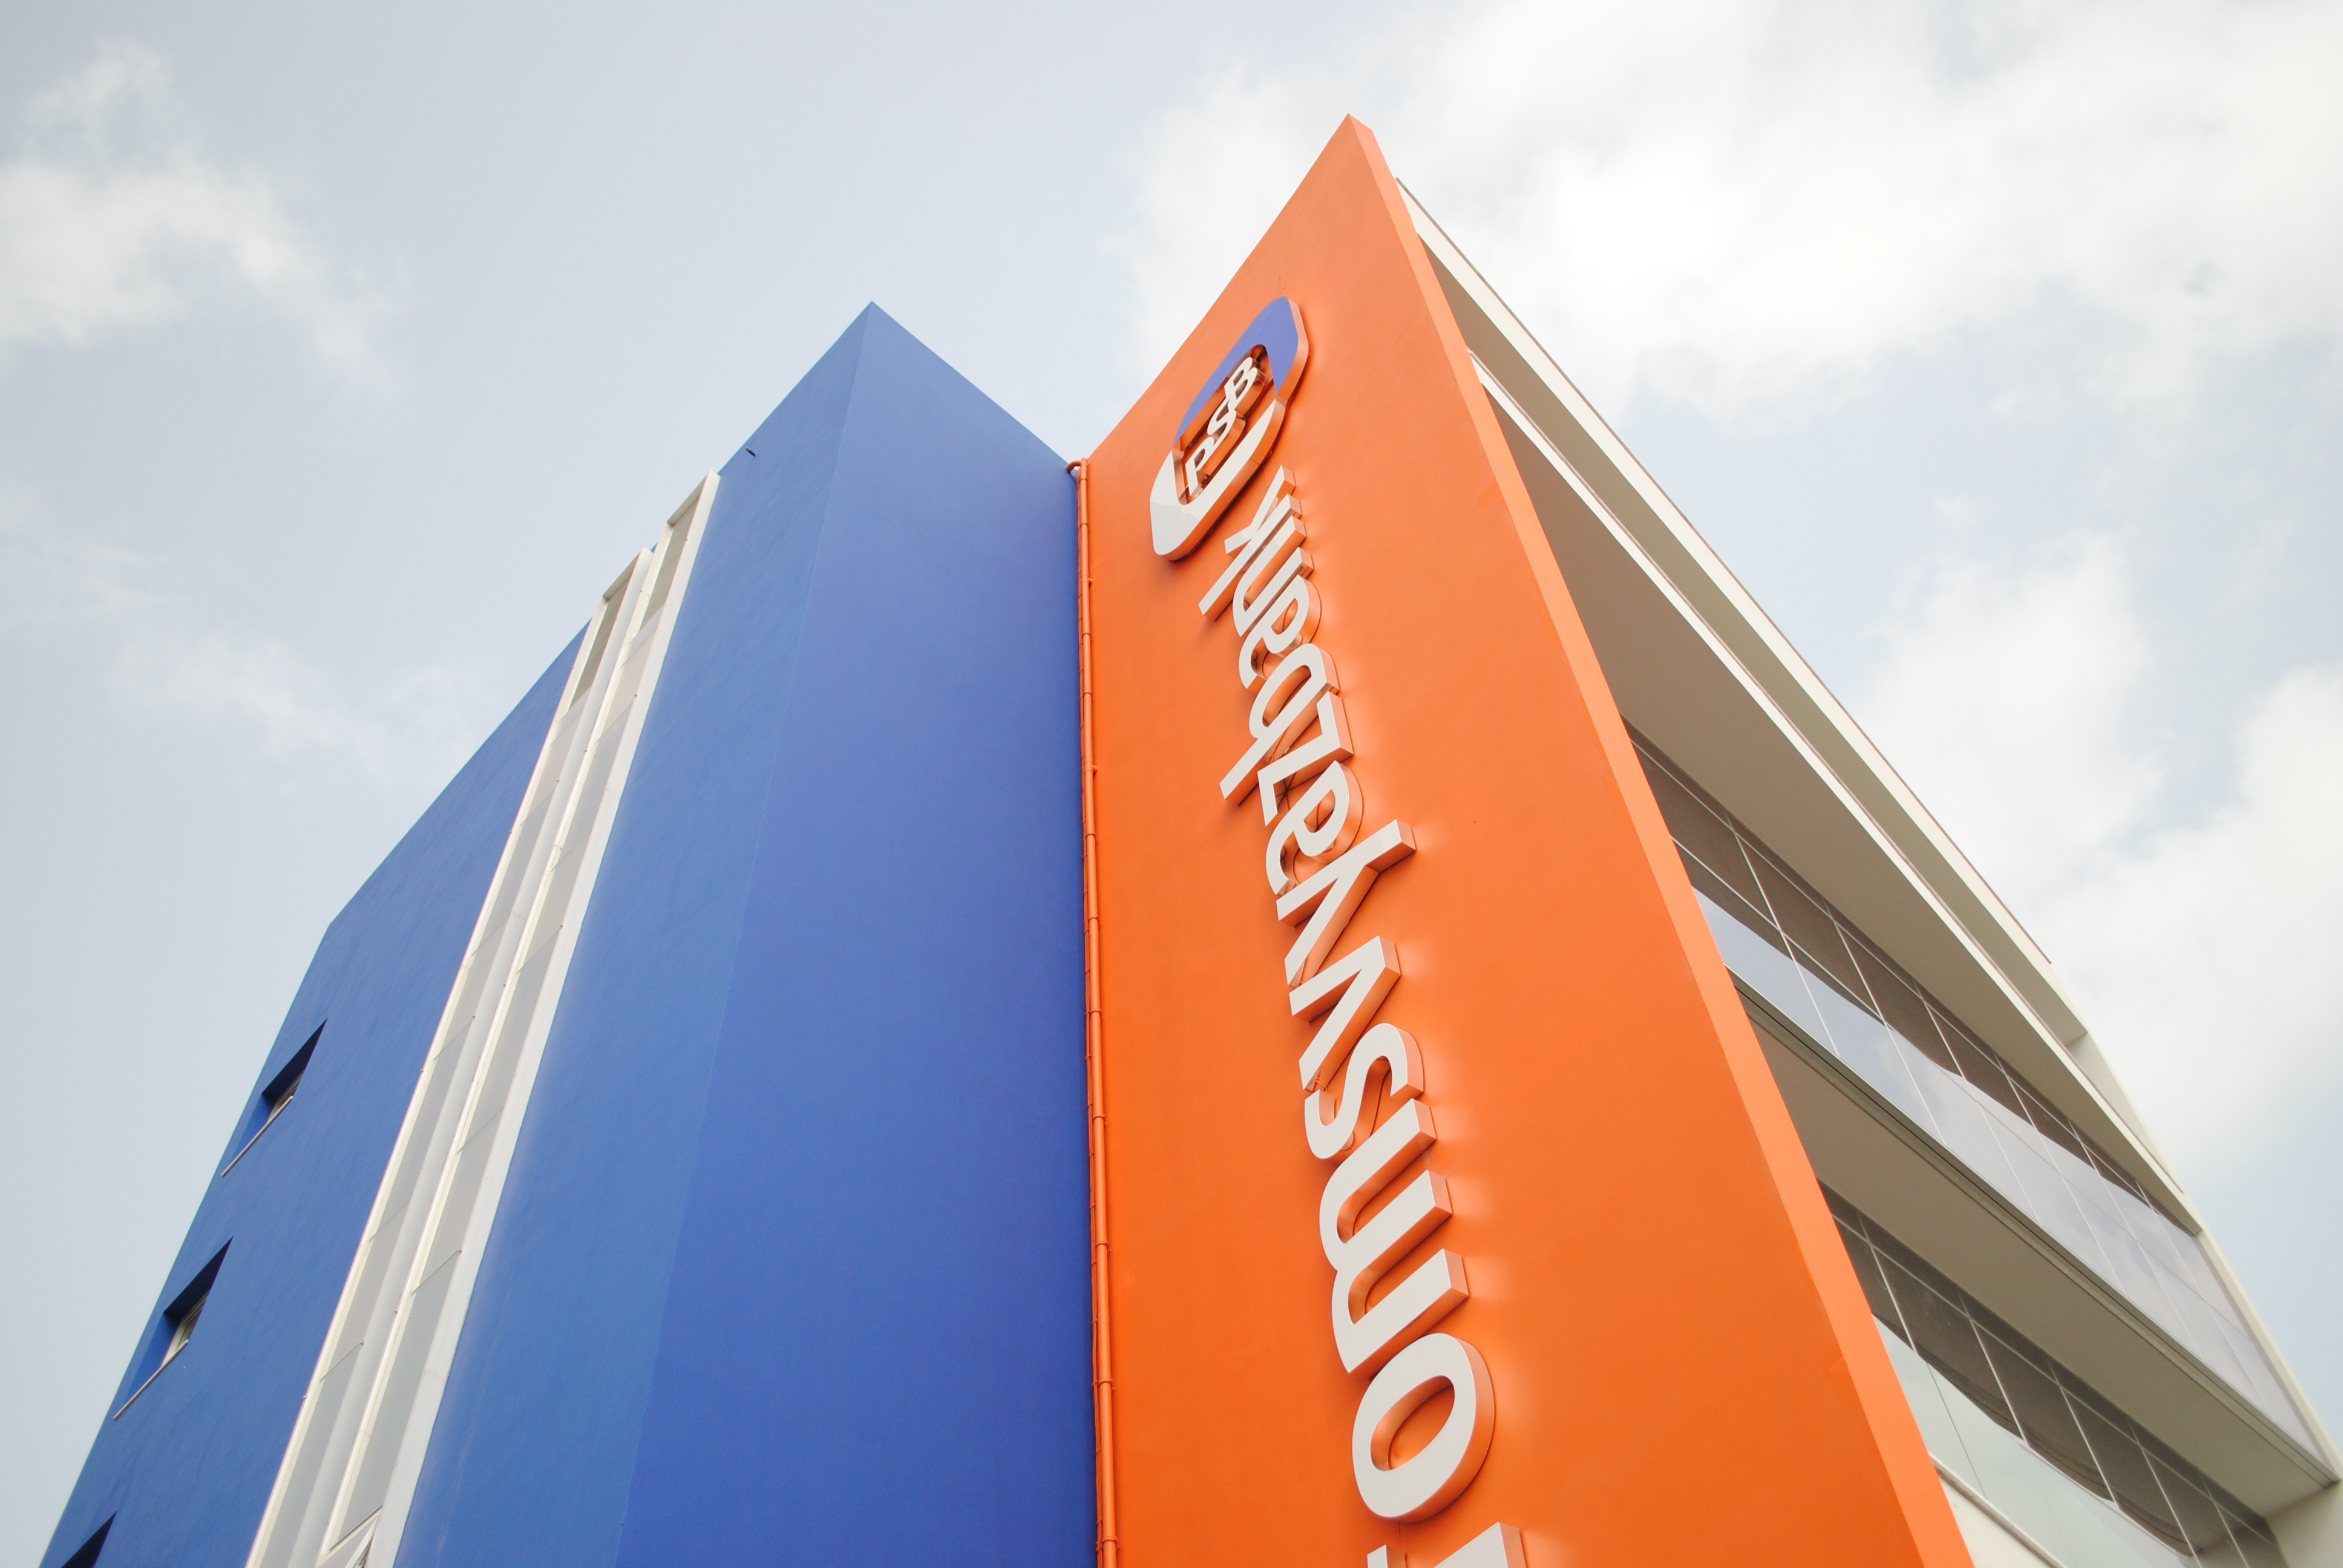 What advantageous contribution can Promsvyazbank offer its customers